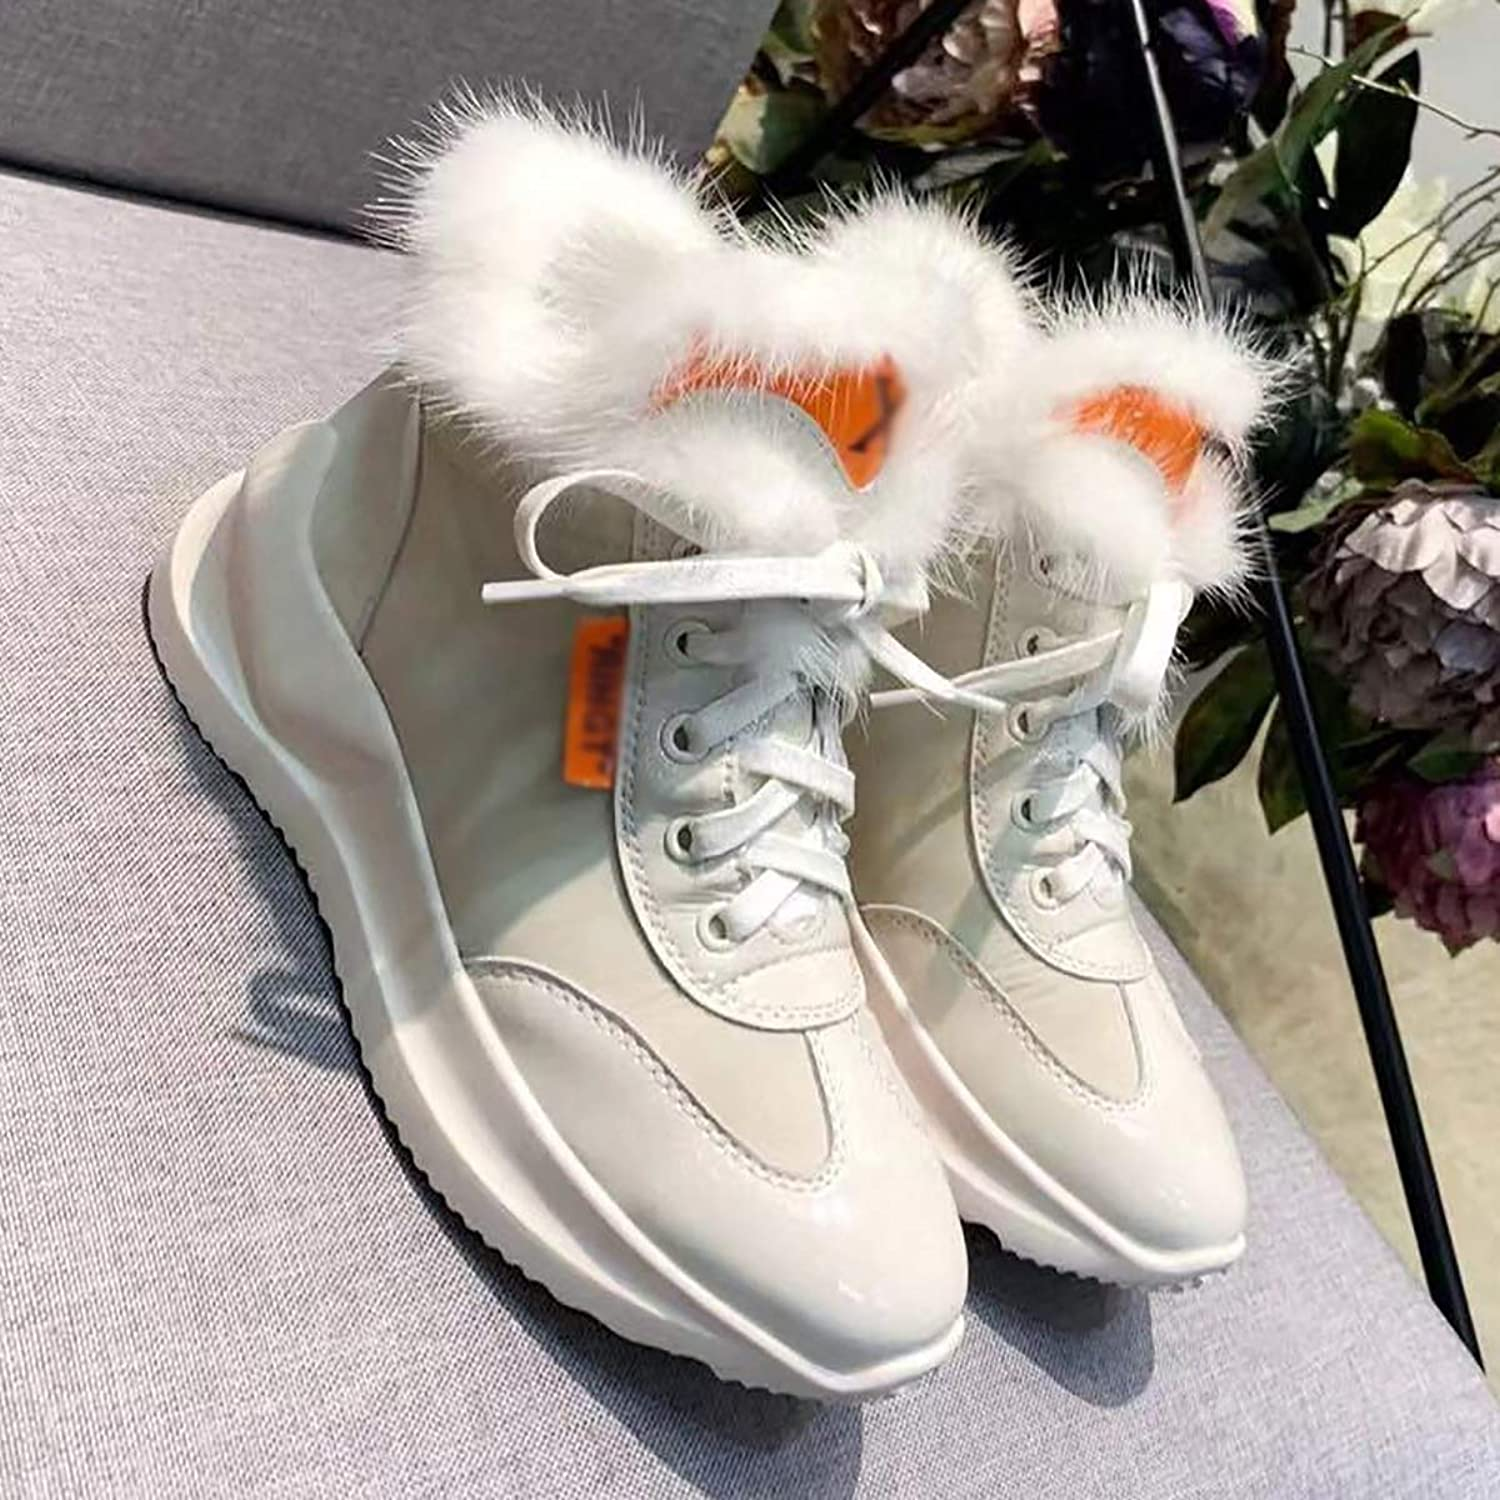 Winter Sports shoes, ins Leather Mane Flat Base Thickening,White,37